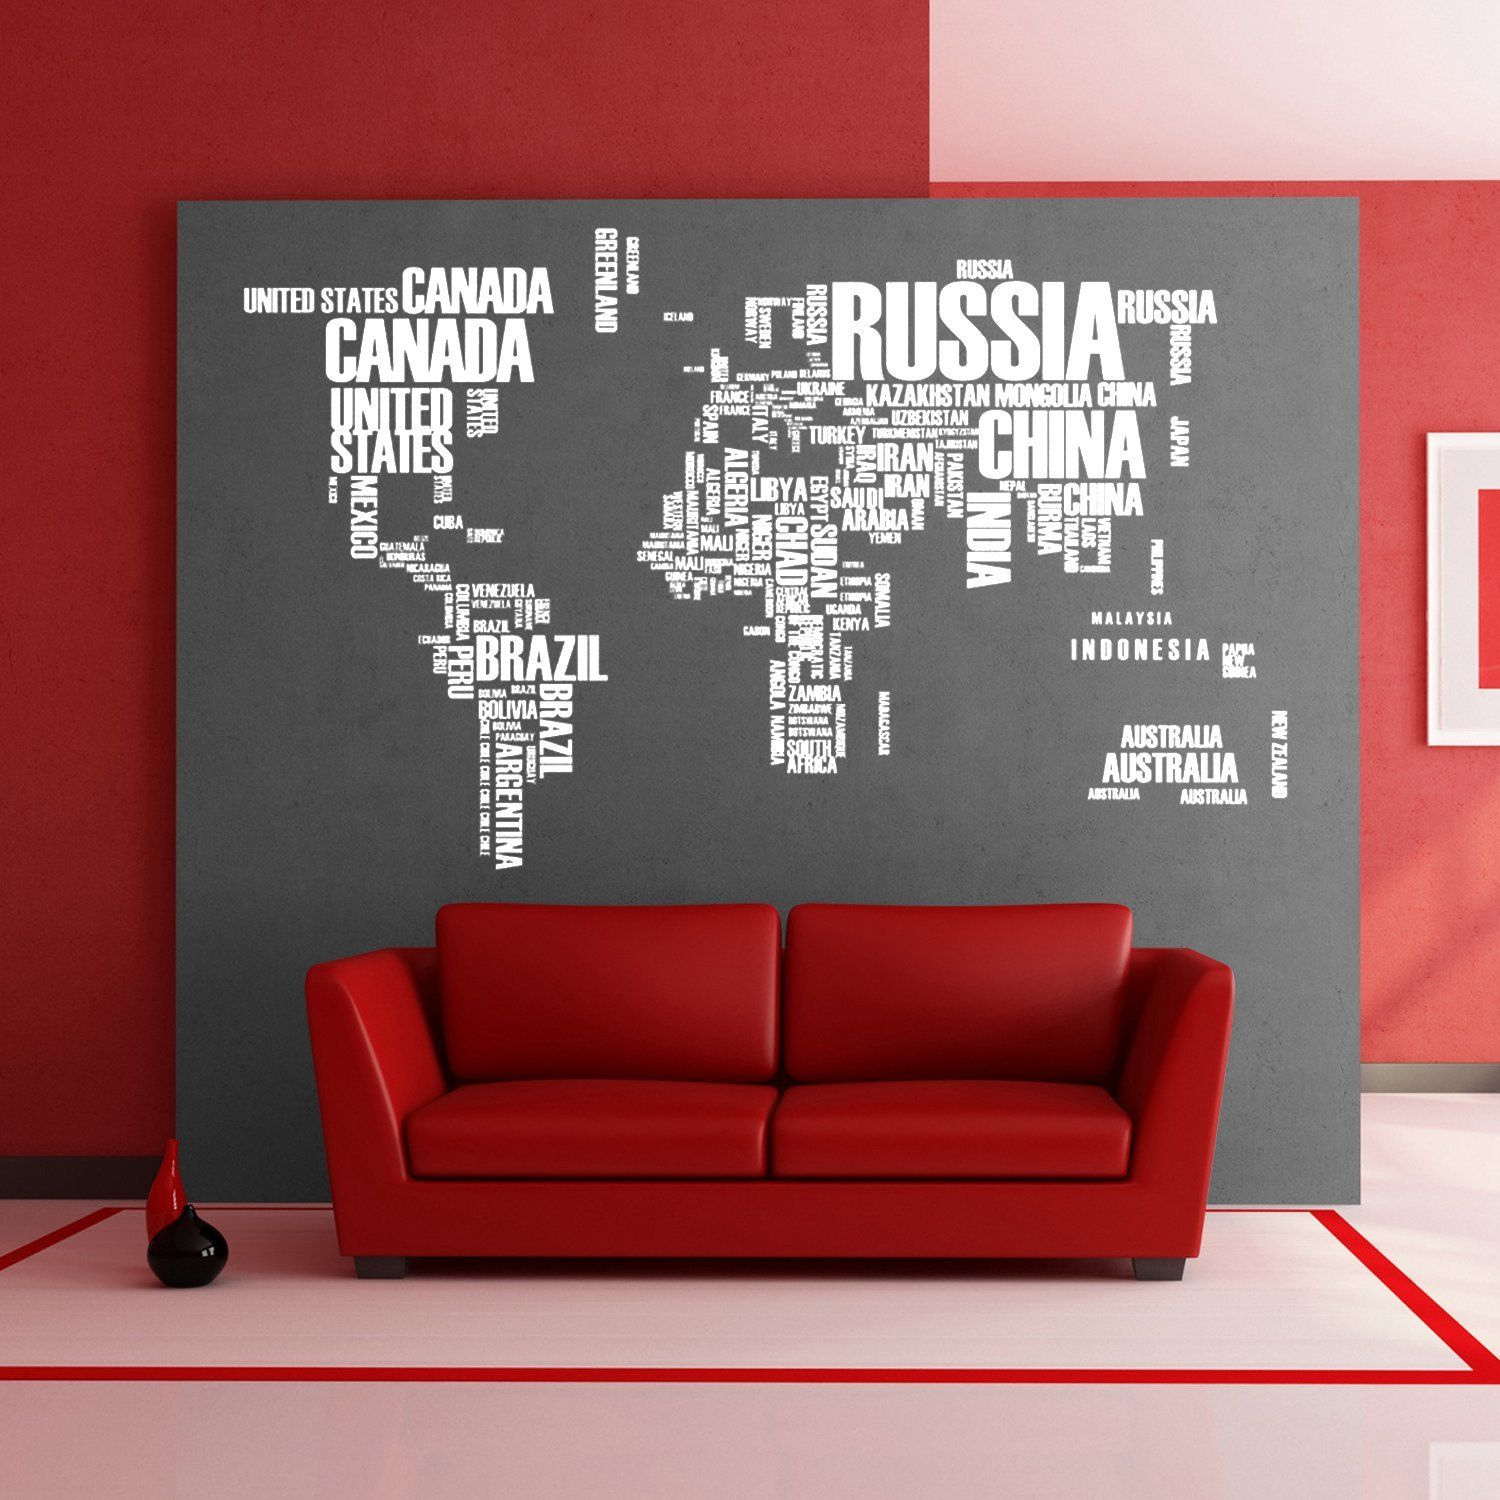 Fabulous large world map pvc wall decal stickers original creative fabulous large world map pvc wall decal stickers original creative letters map wall art vinyl wall stickers for office home decorations for living room gumiabroncs Gallery